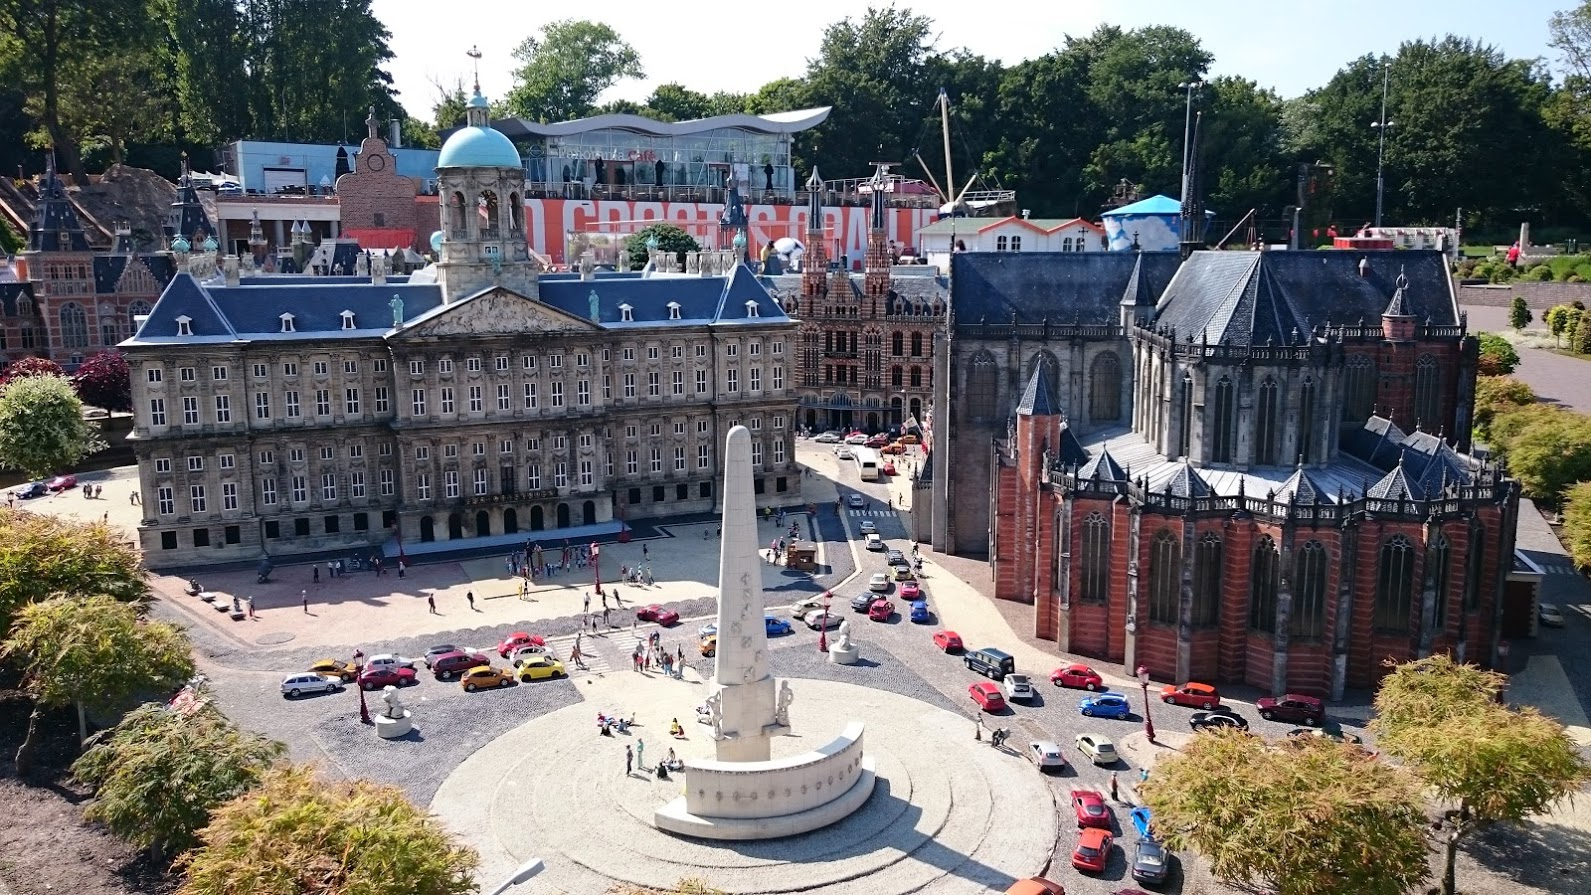 Amsterdam: DAM Square - National Monument, Royal Palace and the Nieuwe Kerk (New Church)